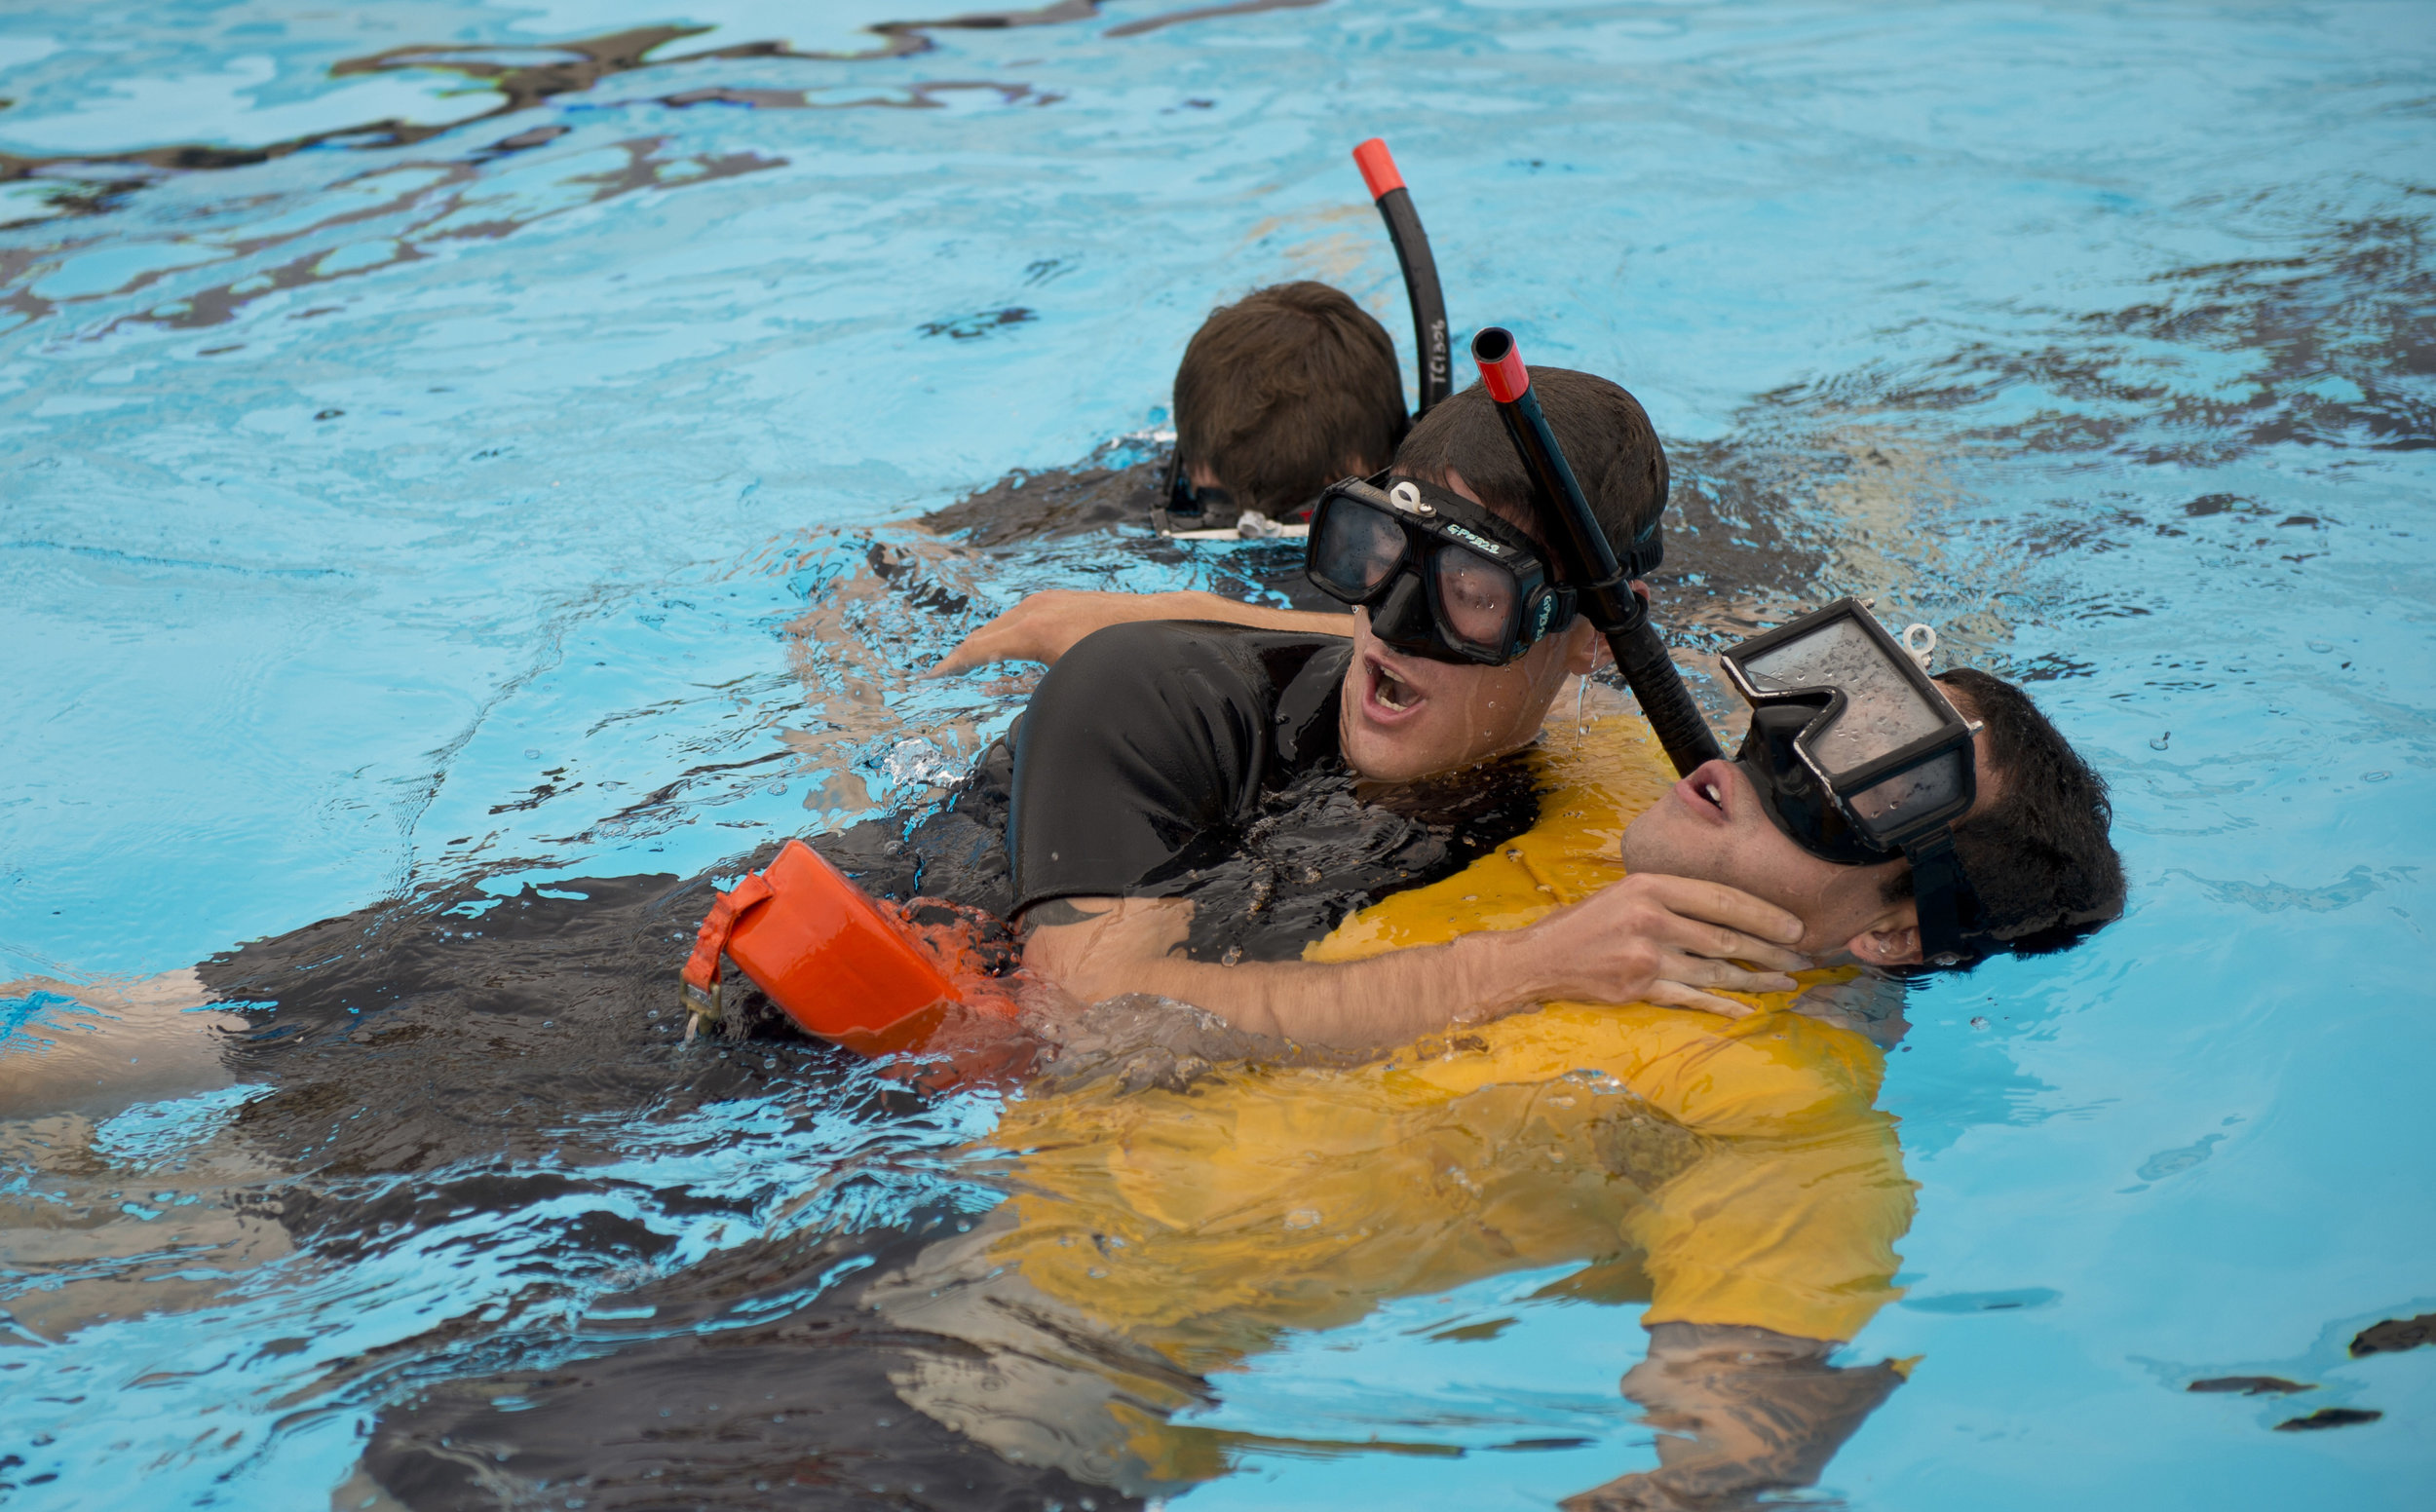 Prepare Yourself - We have numerous training suggestions to prepare for the PST, swim stroke advice, and workout guidelines to contribute to the work you will have to put in play.You can begin your journey today with the Warrior Challenge Program which will help you develop into the soldier you were meant to be.